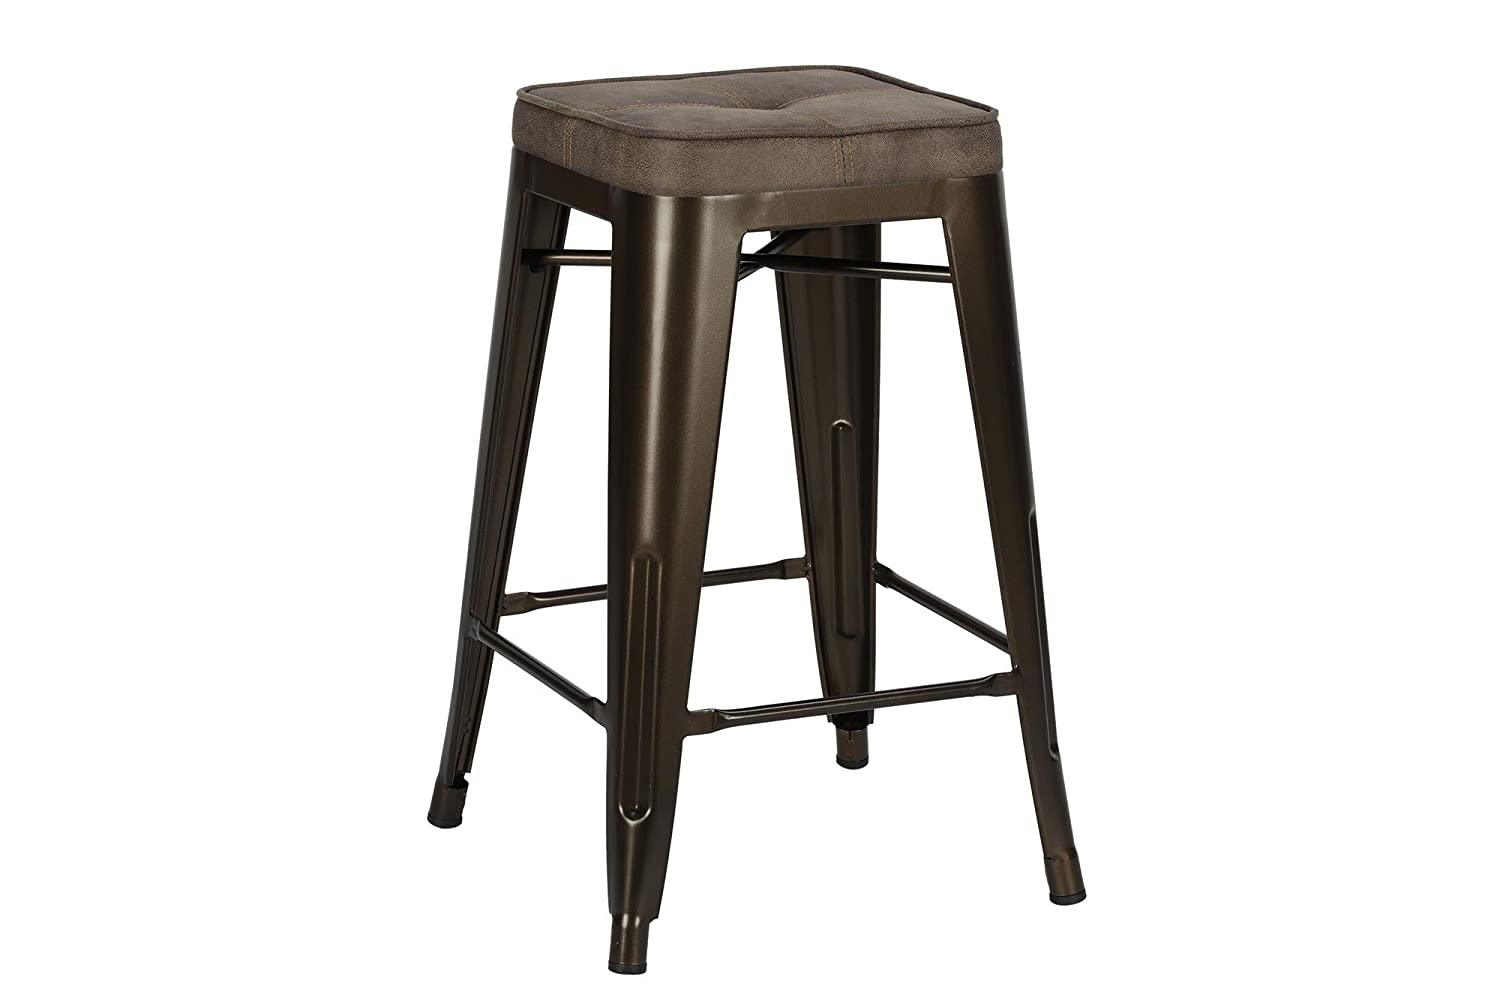 Novogratz Sedona Counter Stool with Metal Legs and Faux Leather Seat, Set of Two, Bronze